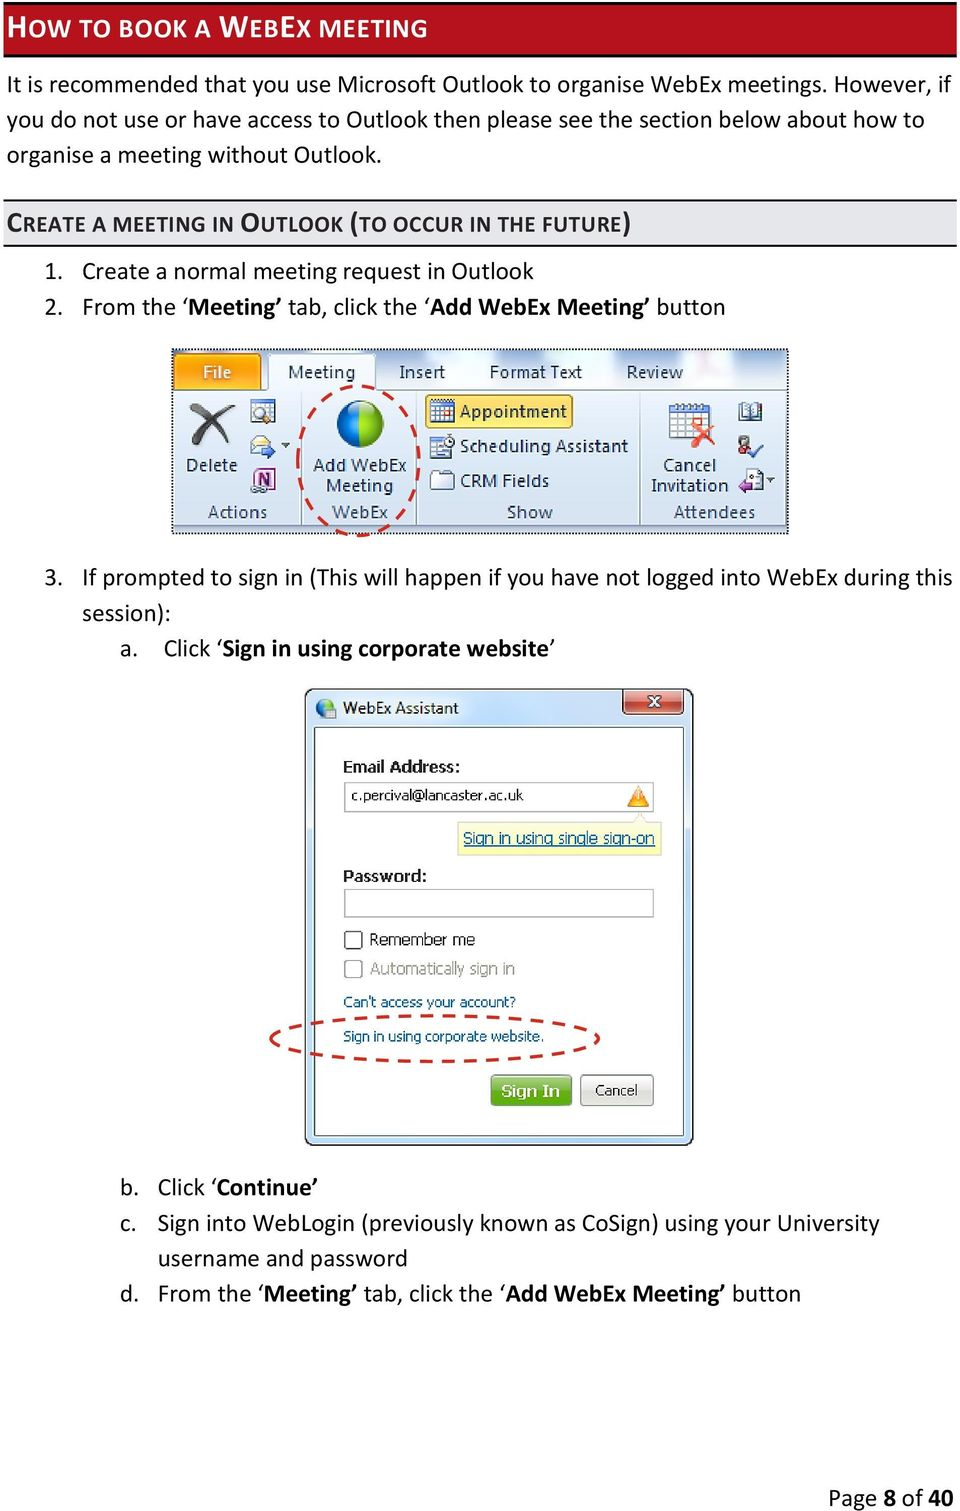 CISCO WebEx Guide for Host/Meeting Organiser  Unified